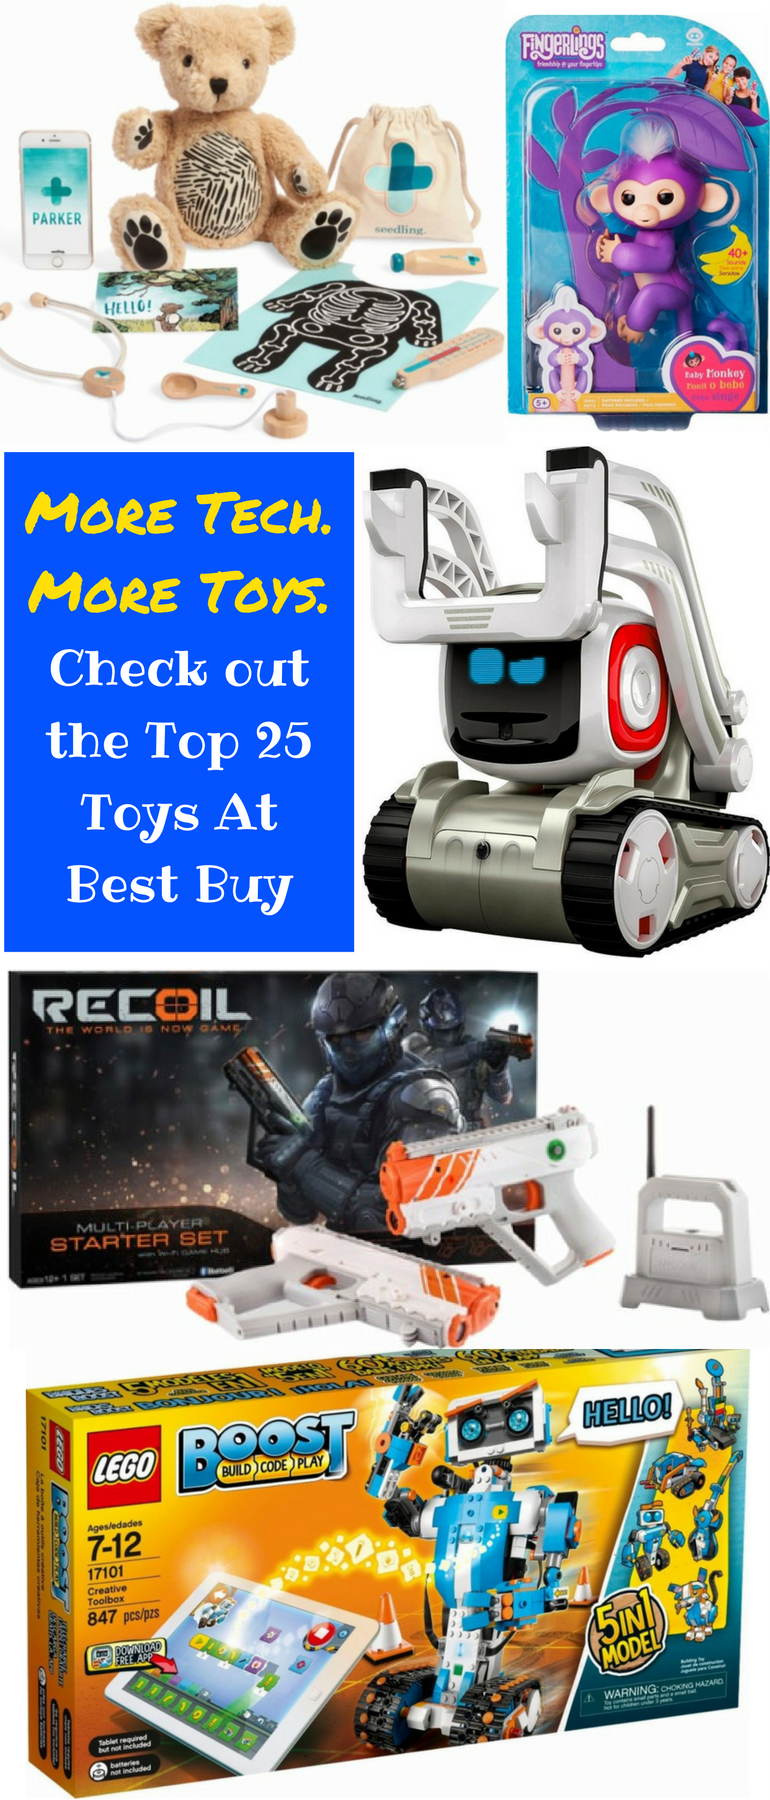 More Tech, More Toys at Best Buy #ad